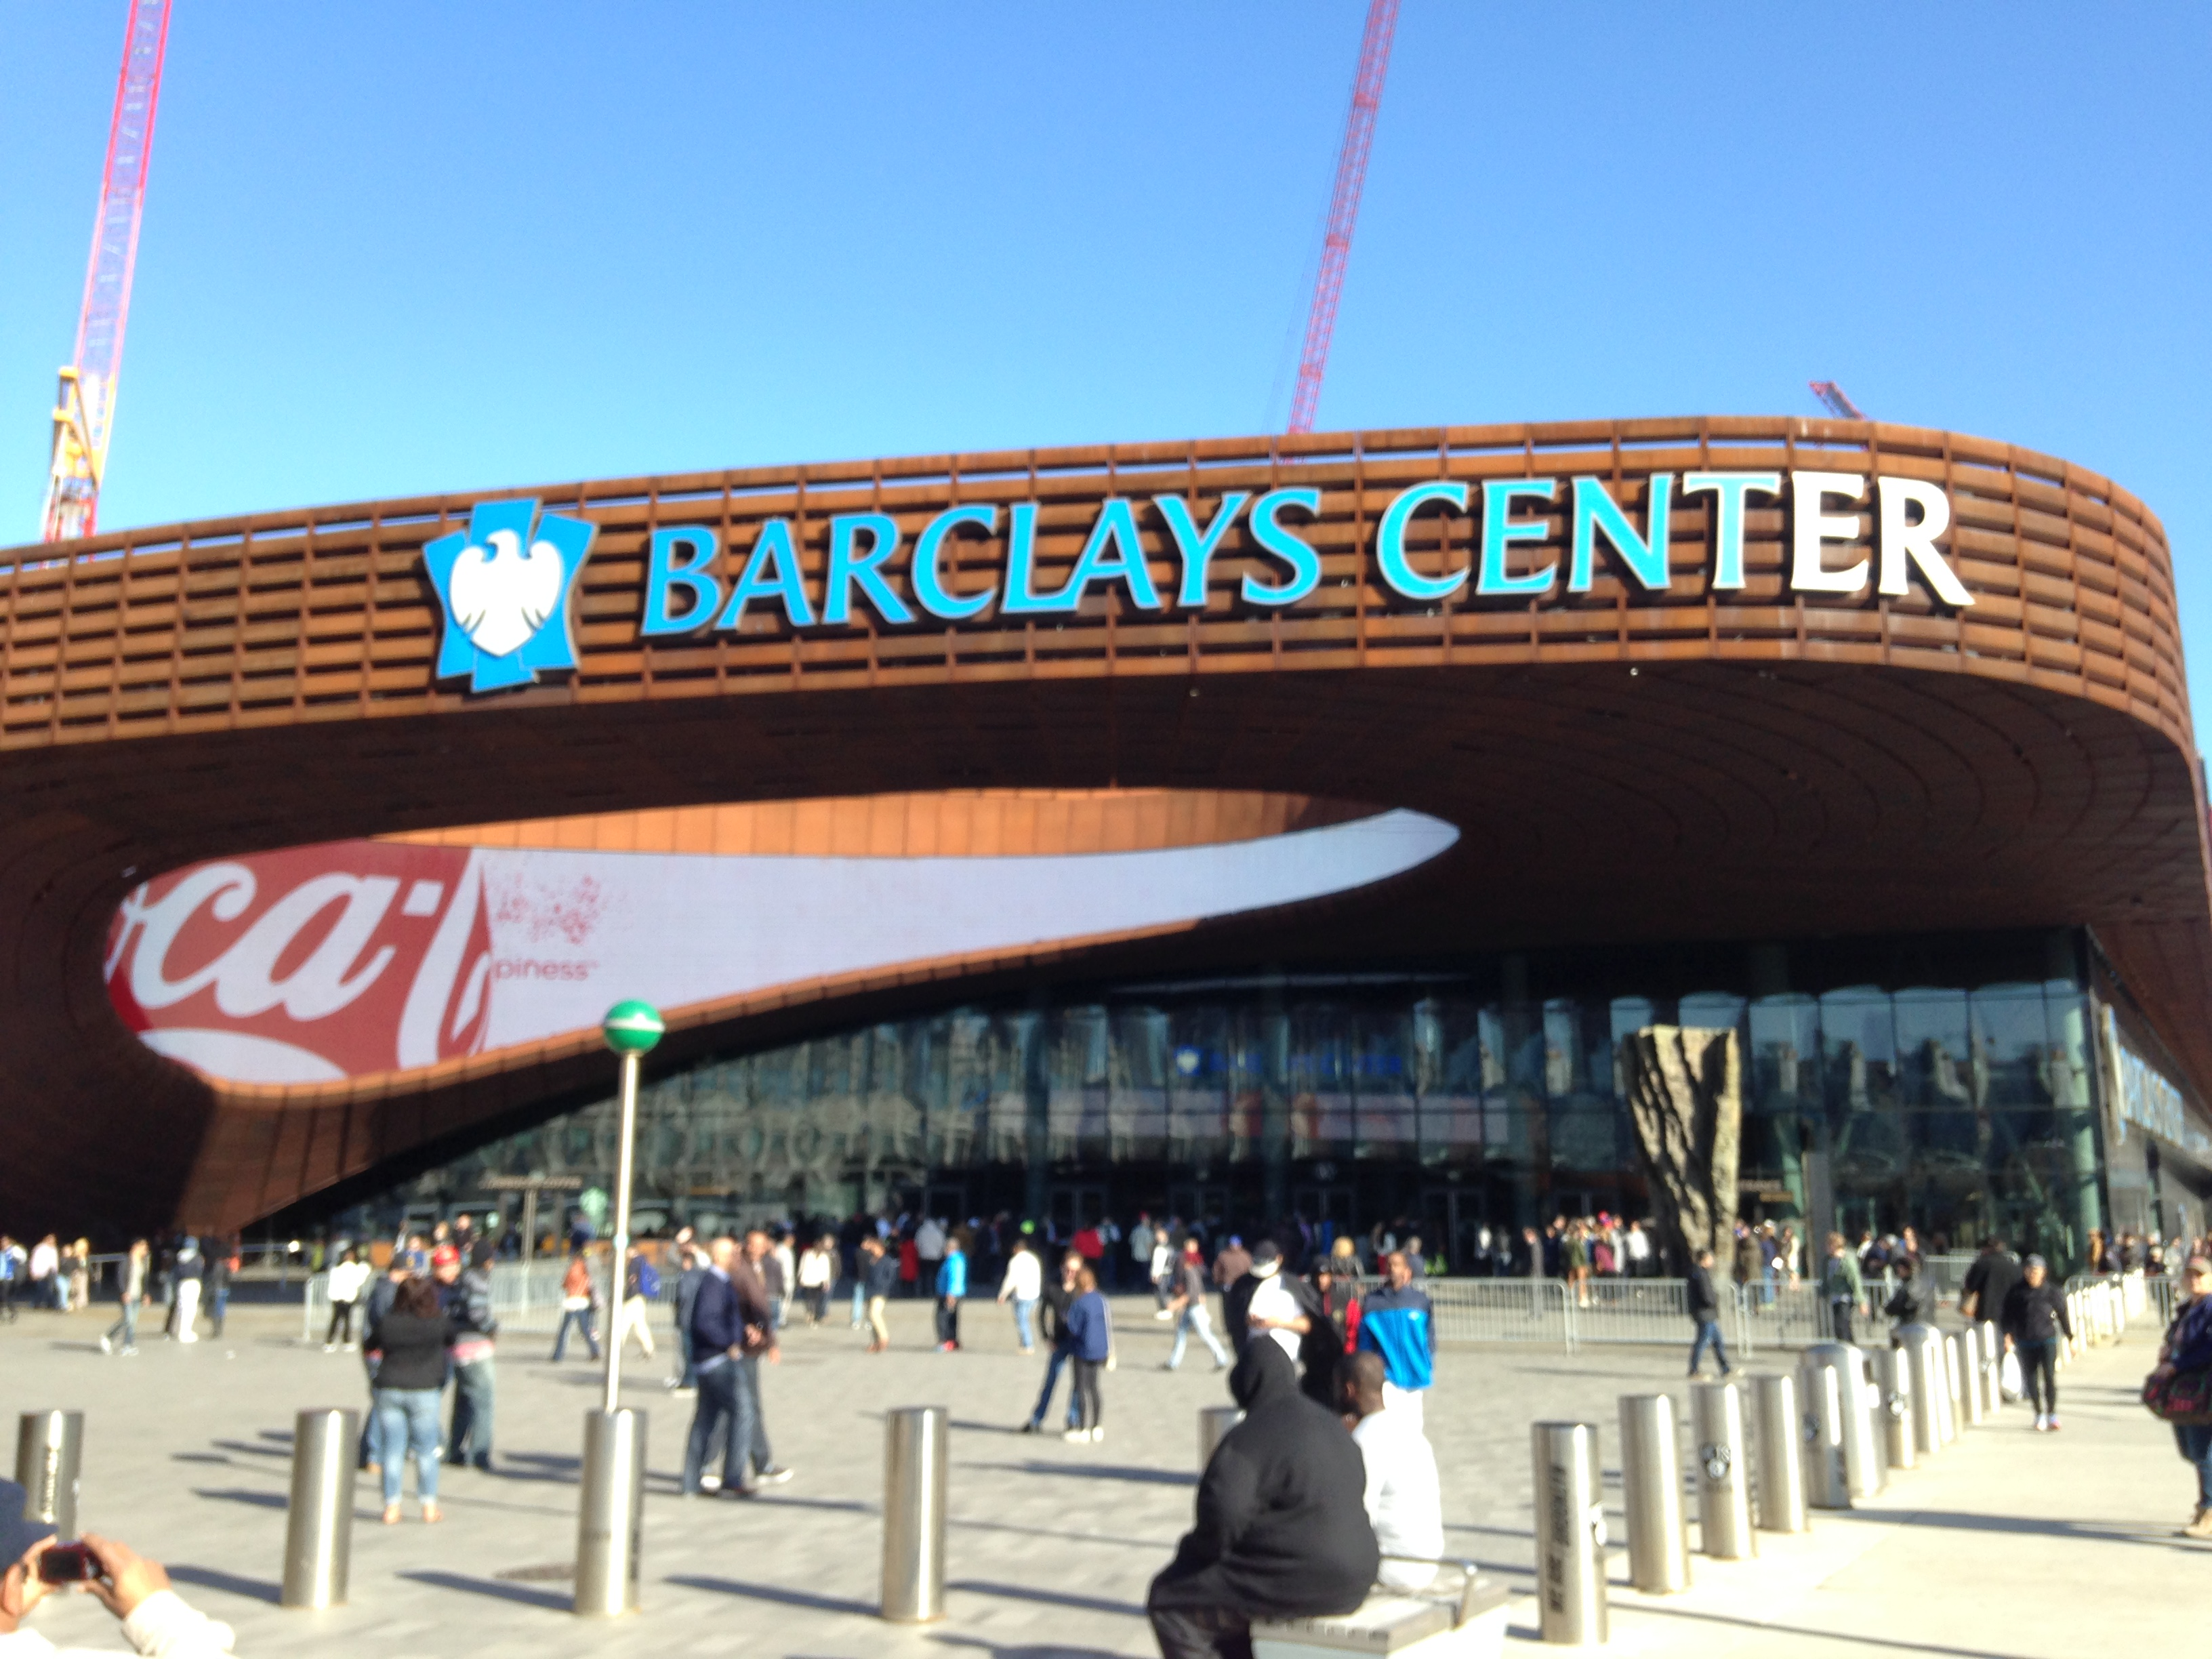 Barclays center brooklyn nets stadium journey for The barclay